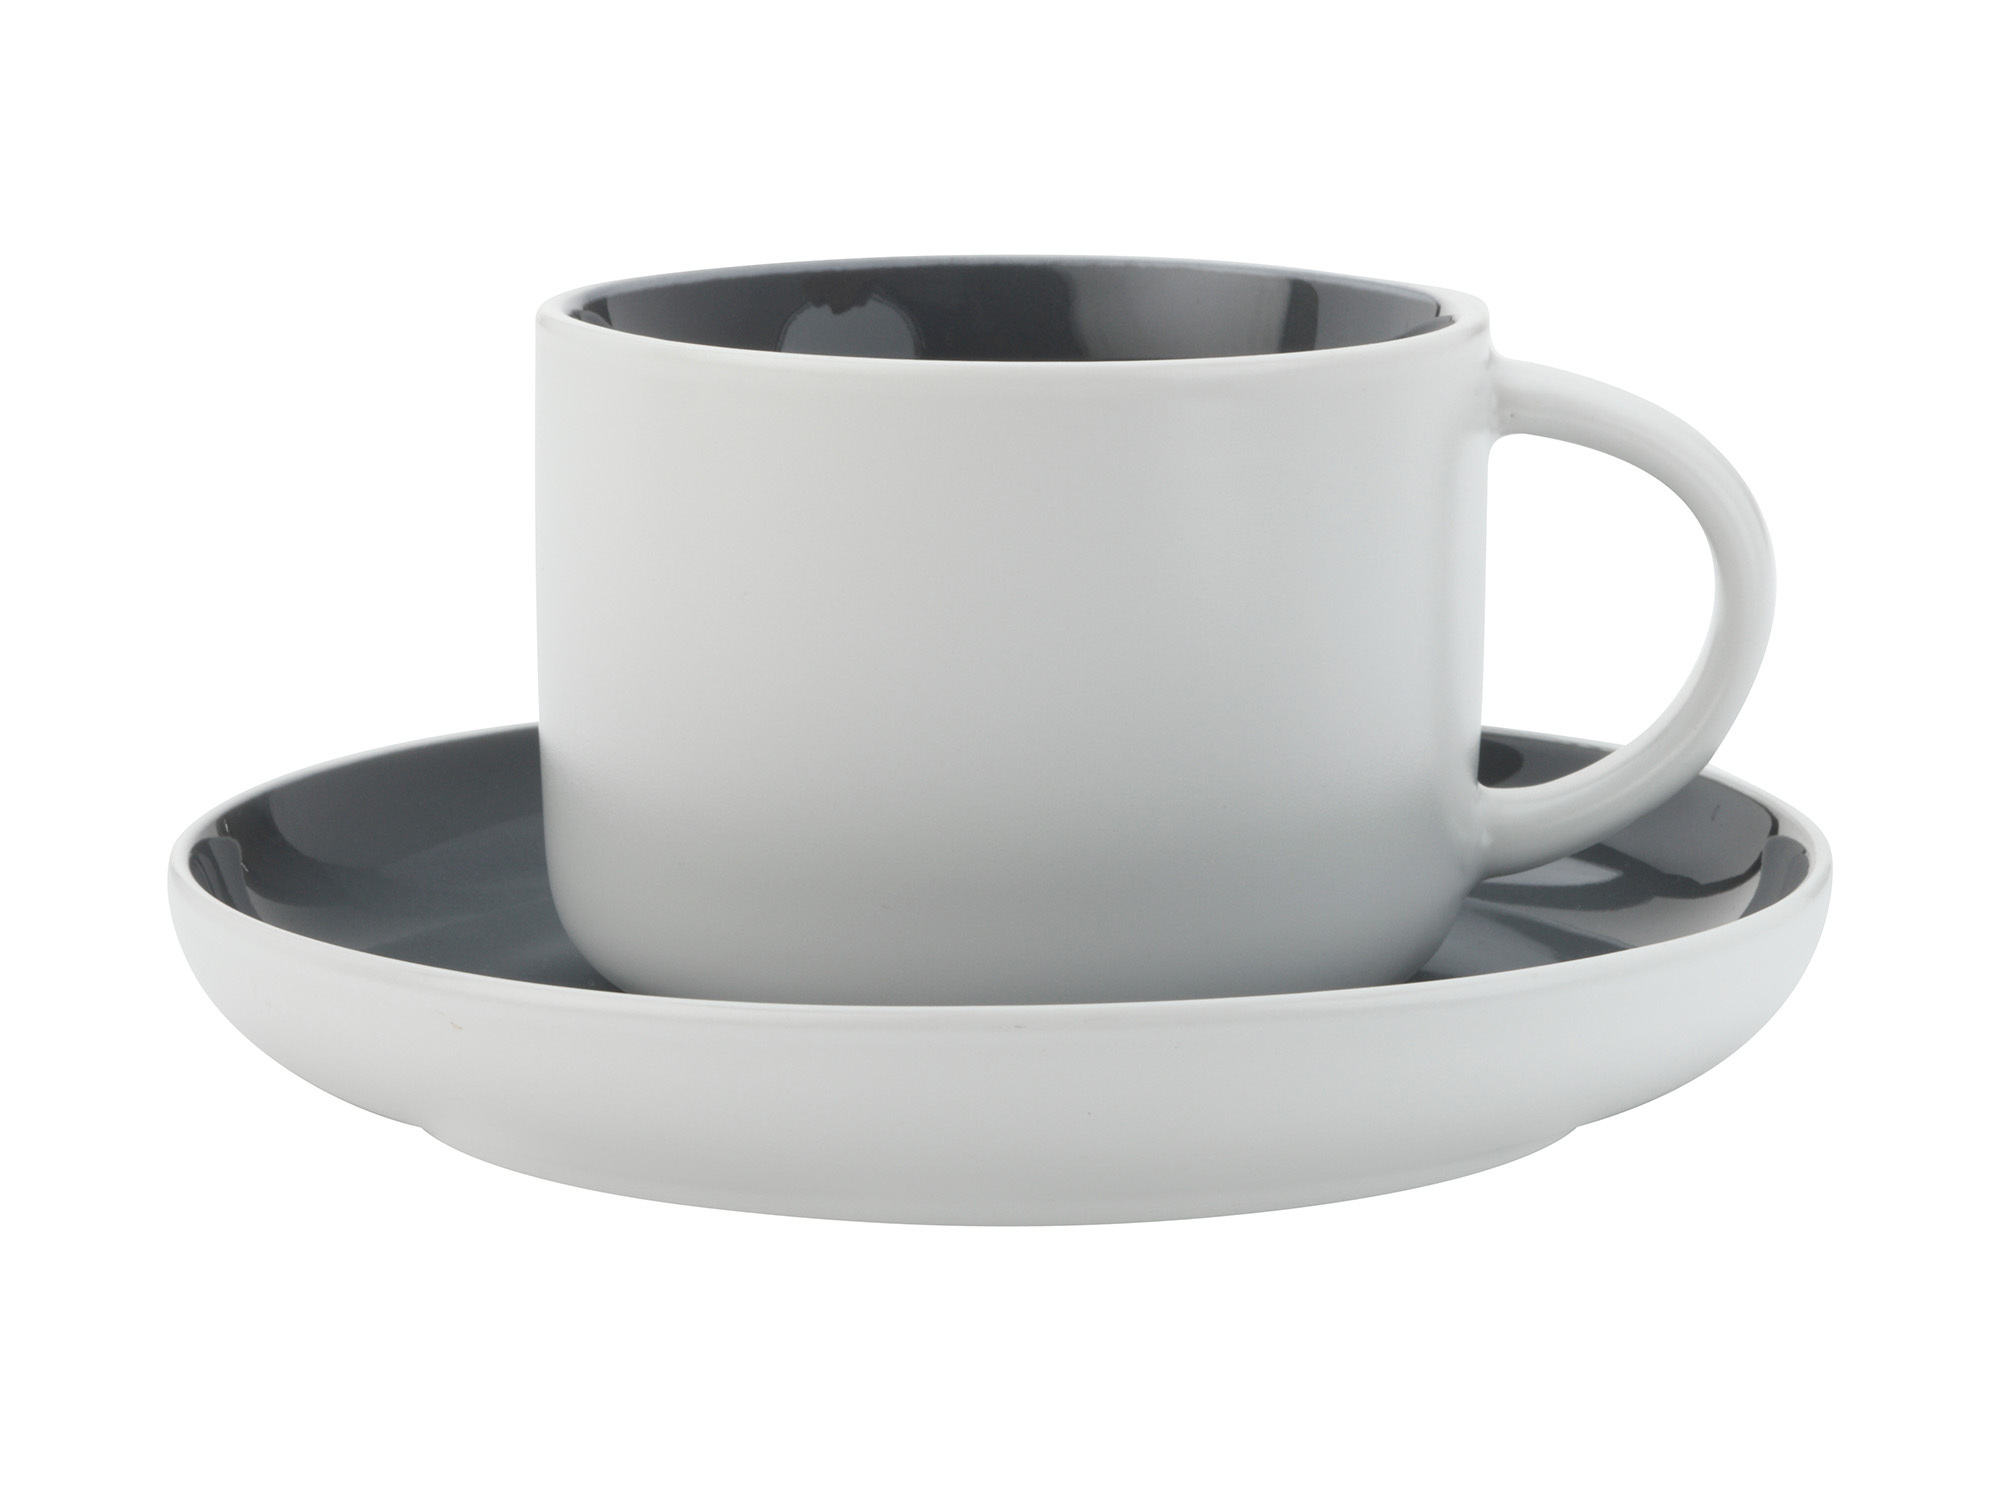 Maxwell & Williams Tint 250Ml Teacup And Saucer Charcoal